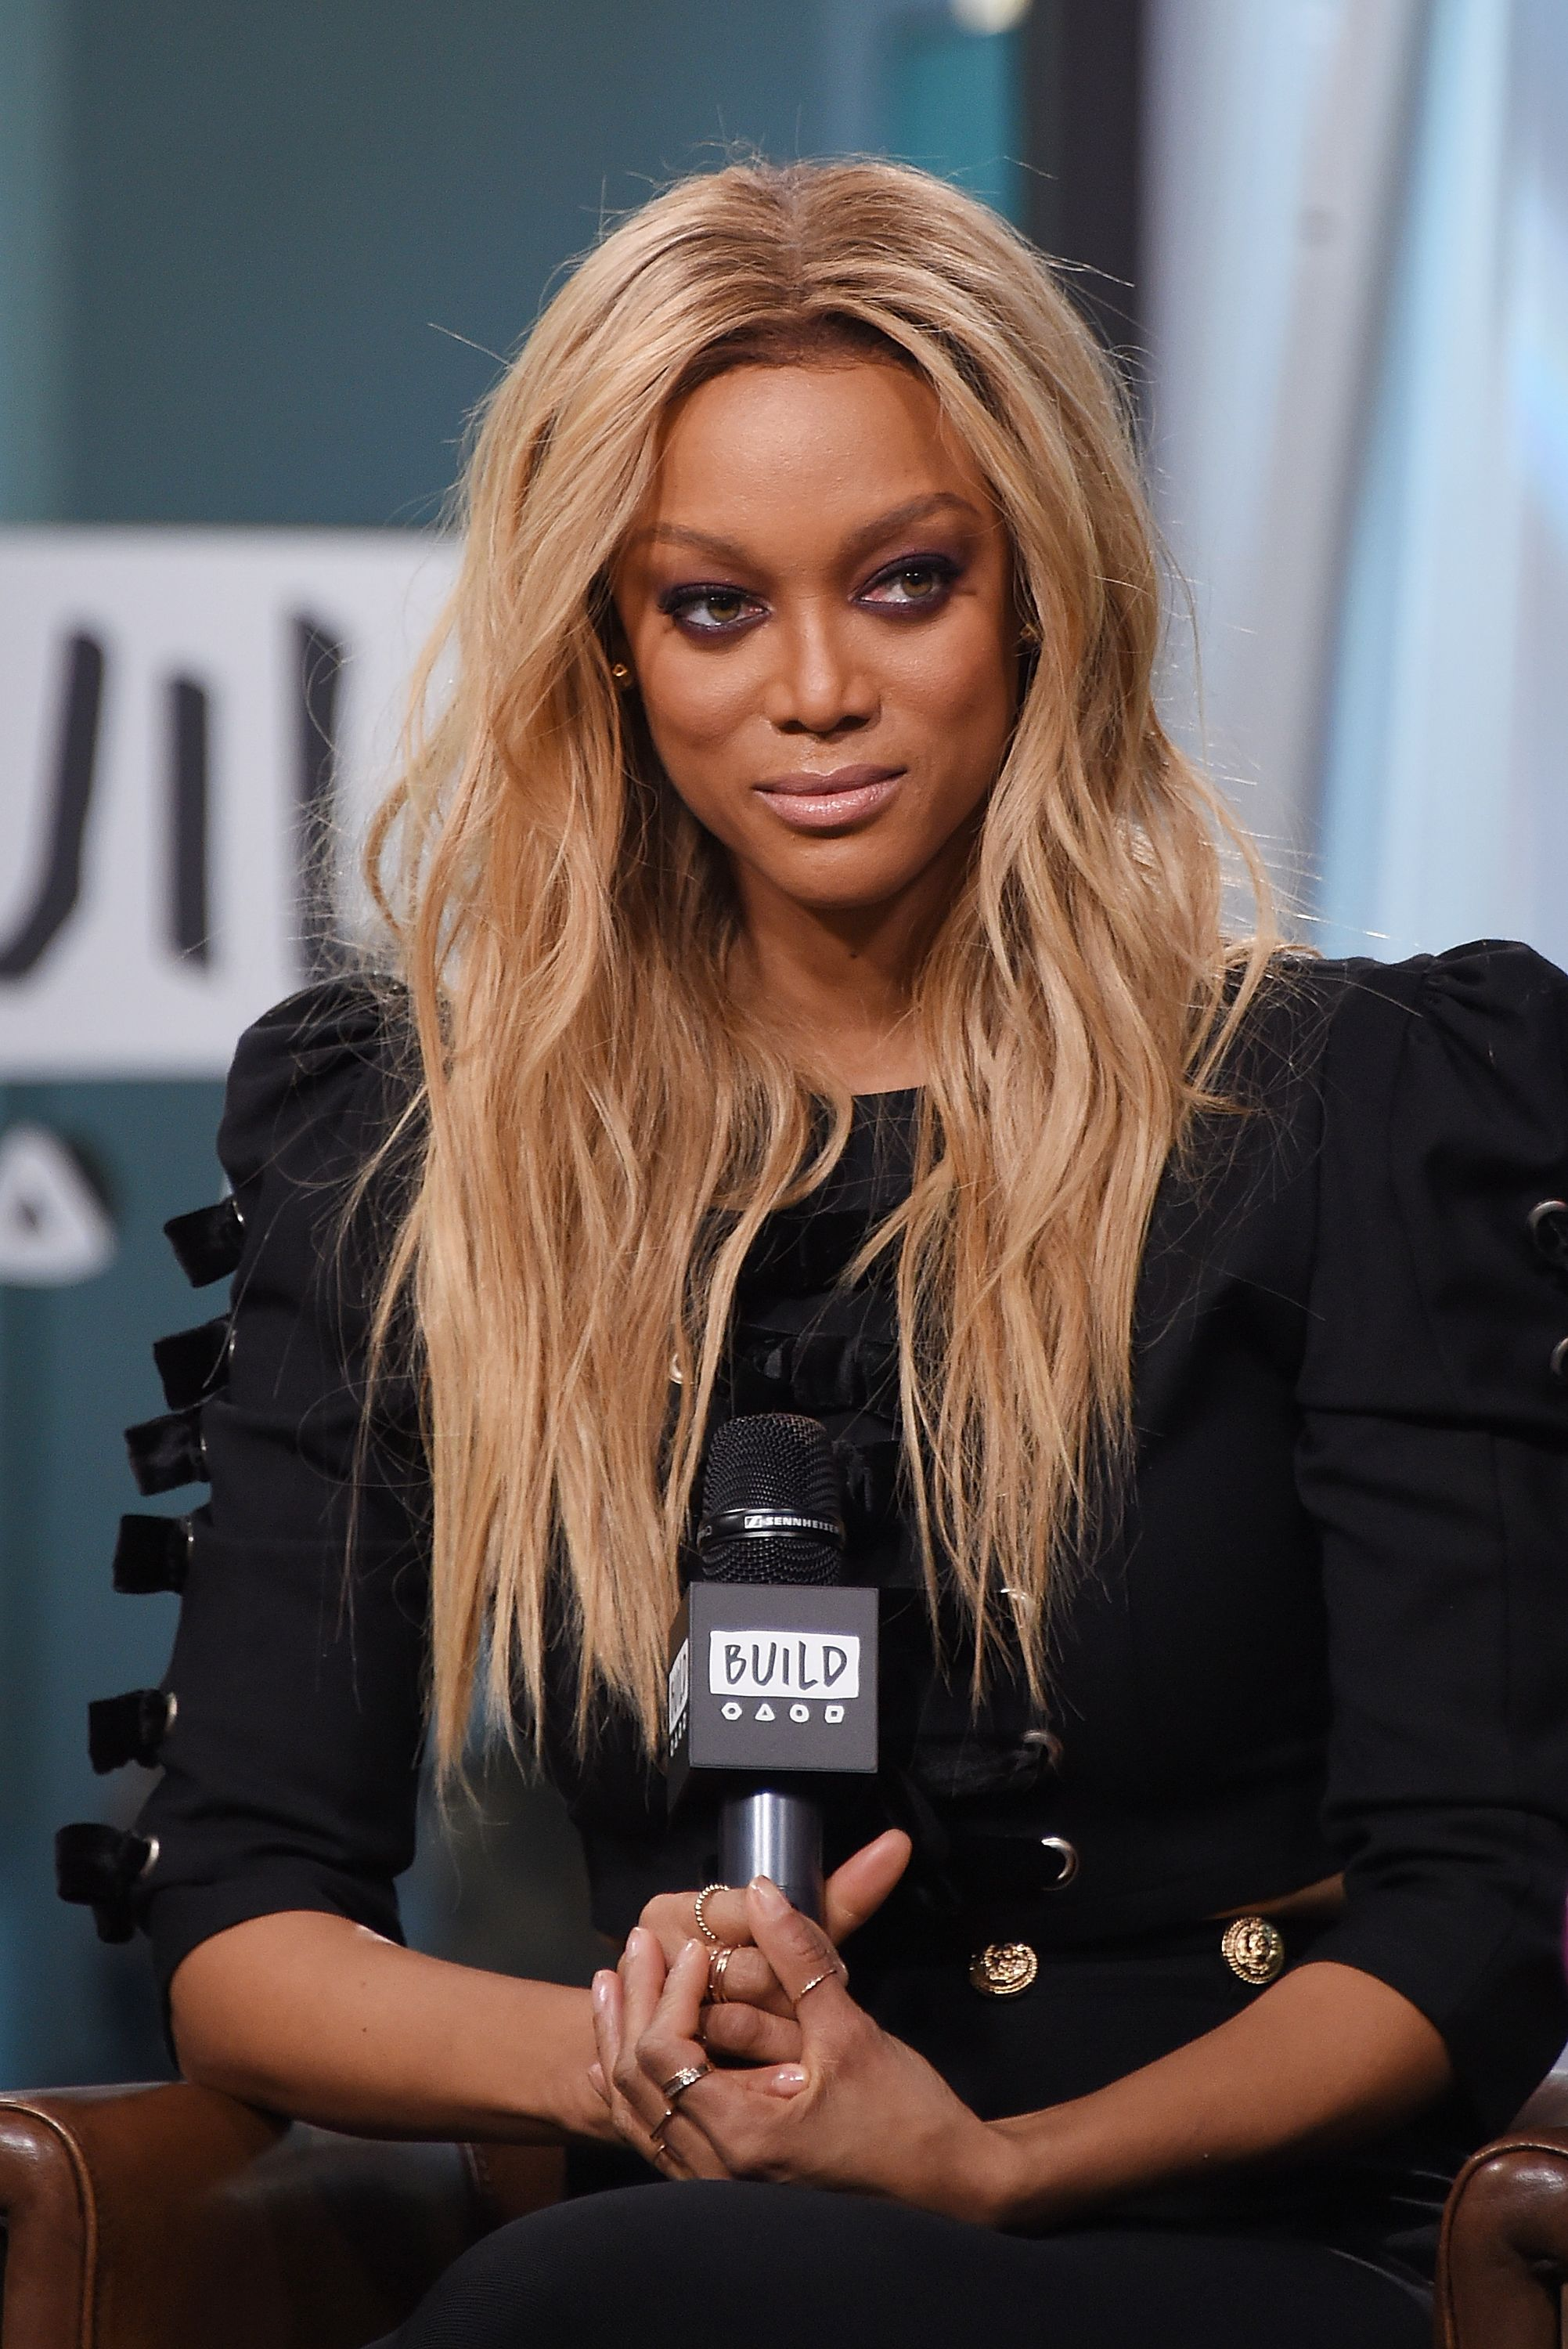 """Tyra Banks at the Build Studio to discuss the show """"America's Next Top Model"""" on January 9, 2018. 